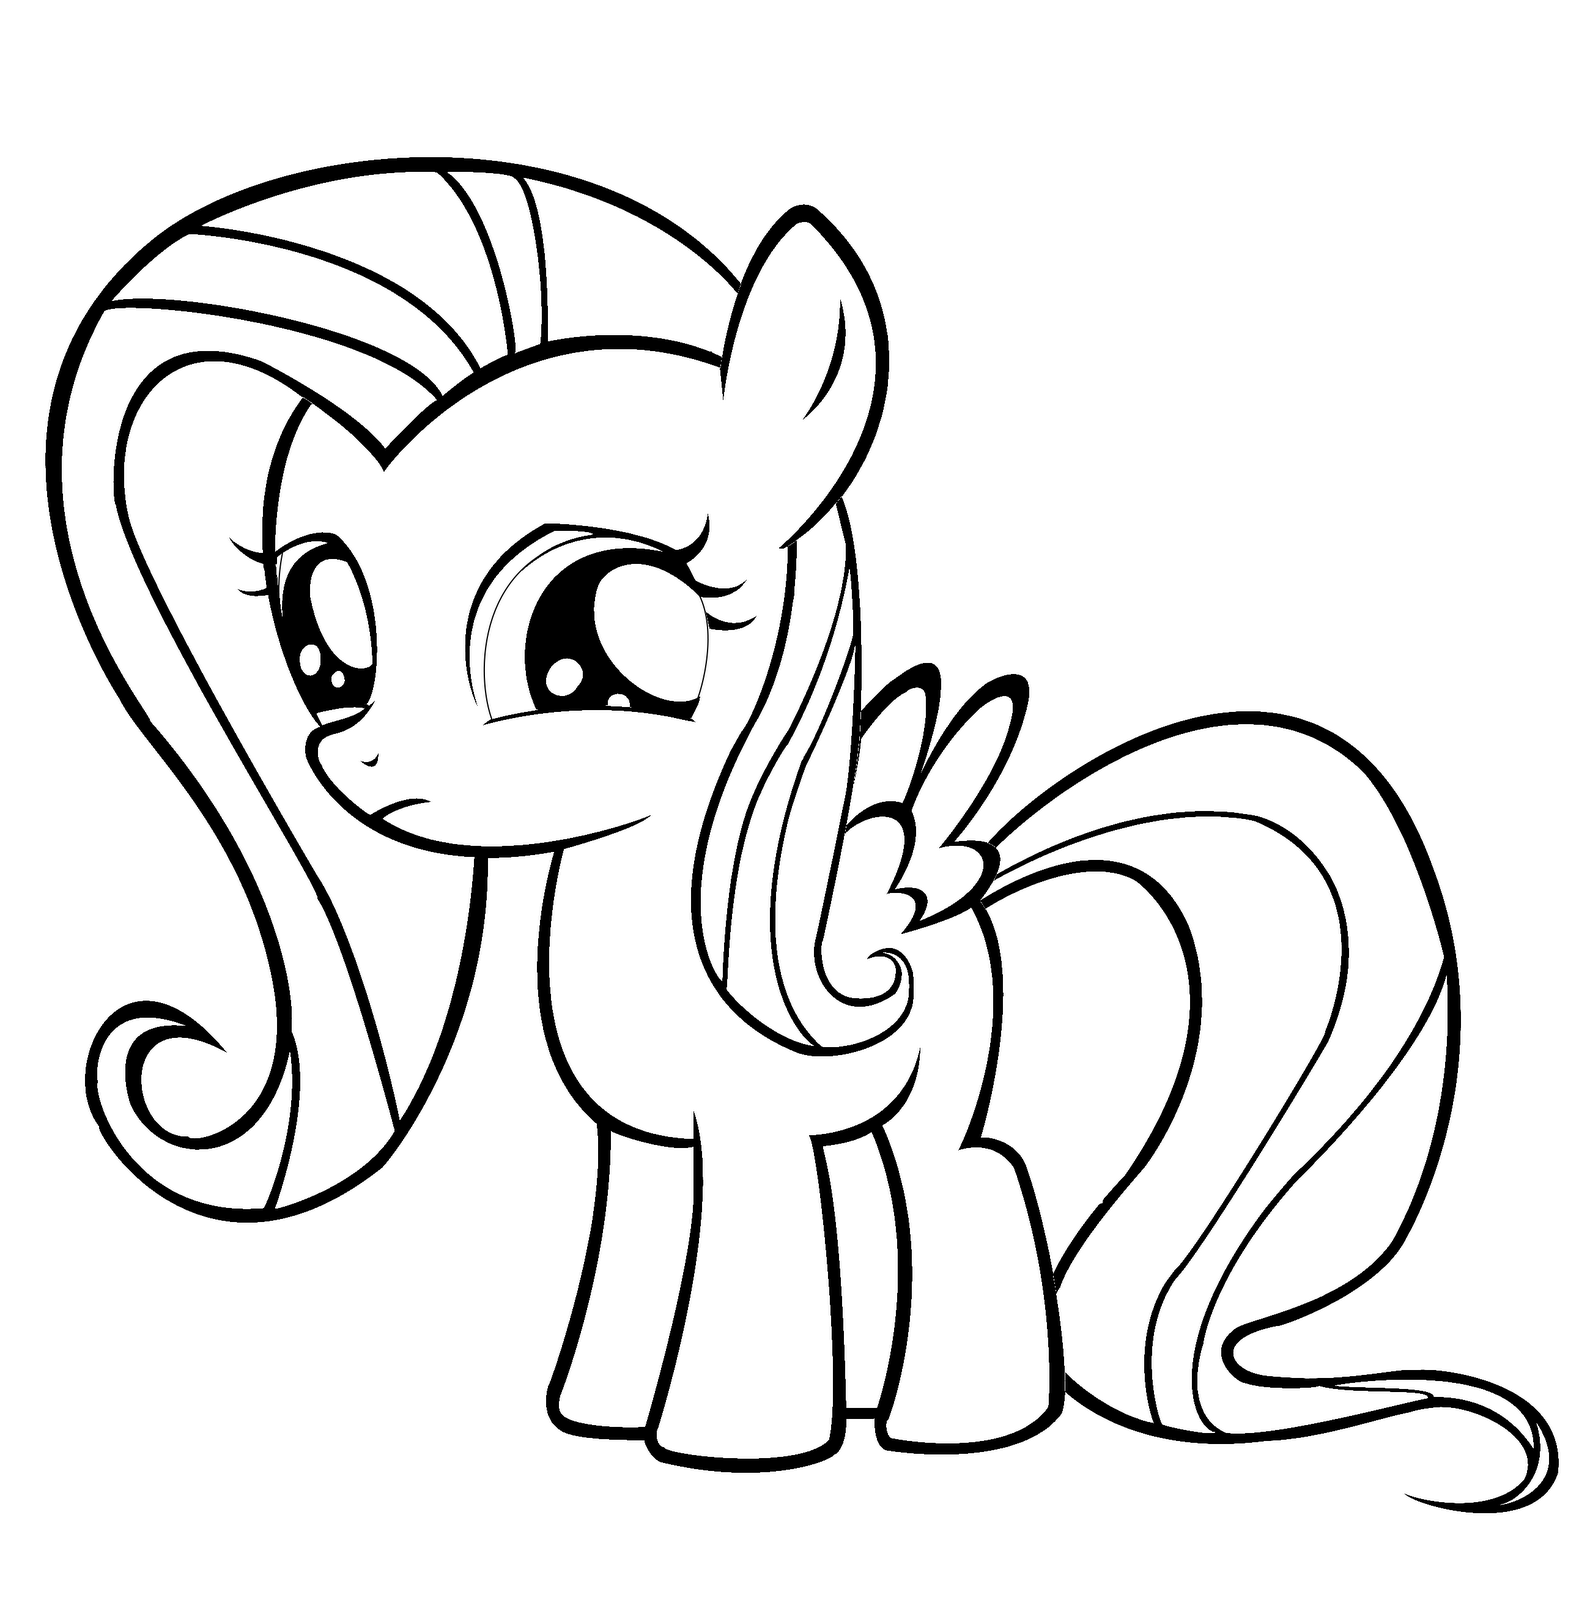 Fluttershy Coloring Pages Best Coloring Pages For Kids Free Coloring Sheets For Toddlers